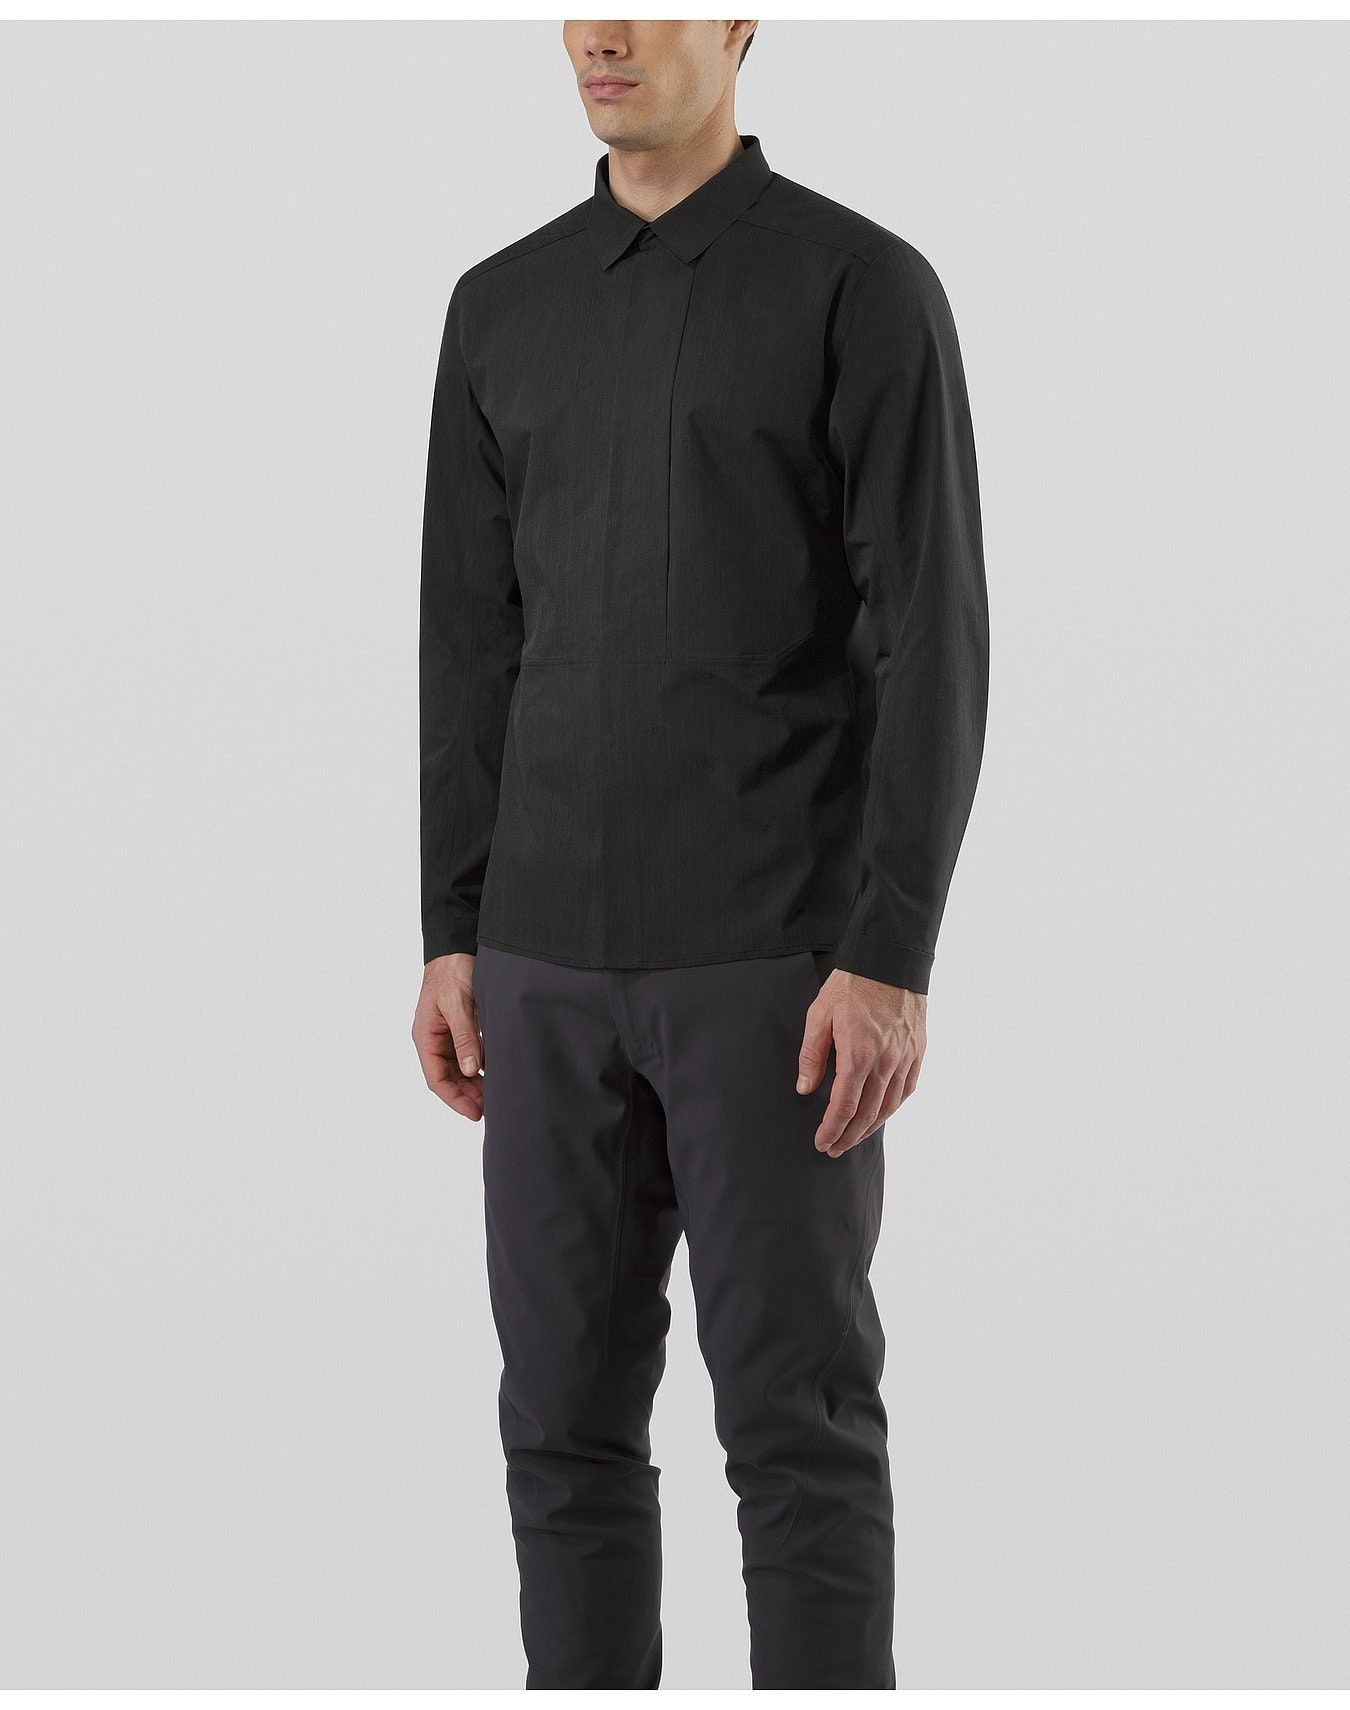 [USED ONCE] Arc'teryx Veilance Operand Shirt LS / Dyadic Sweater (Both In XS)